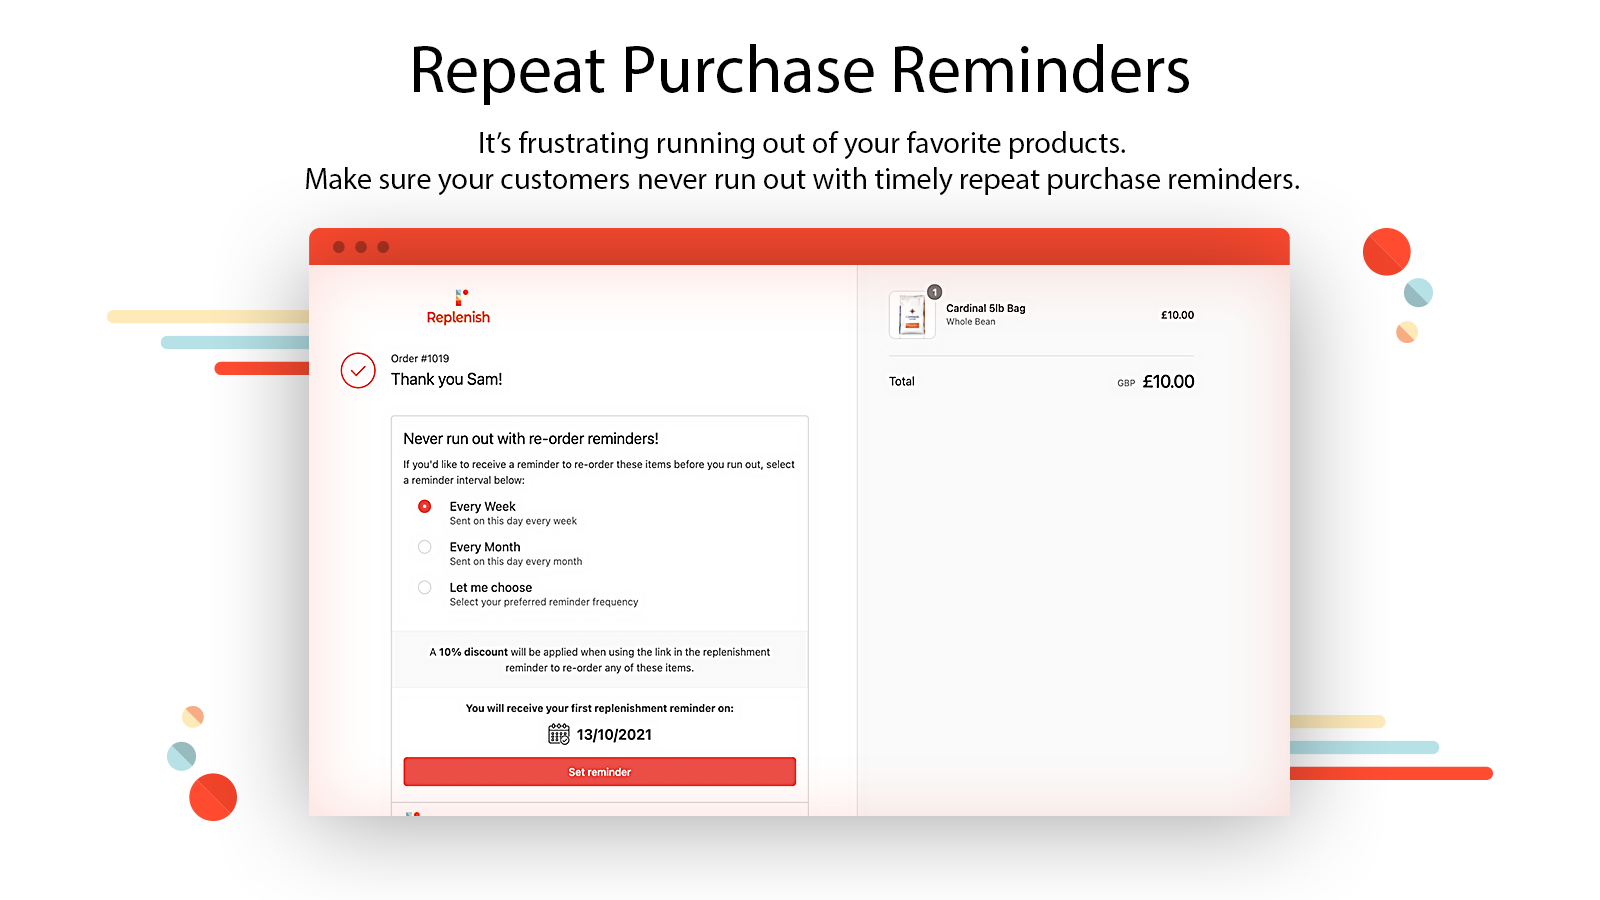 Repeat Purchase Reminders